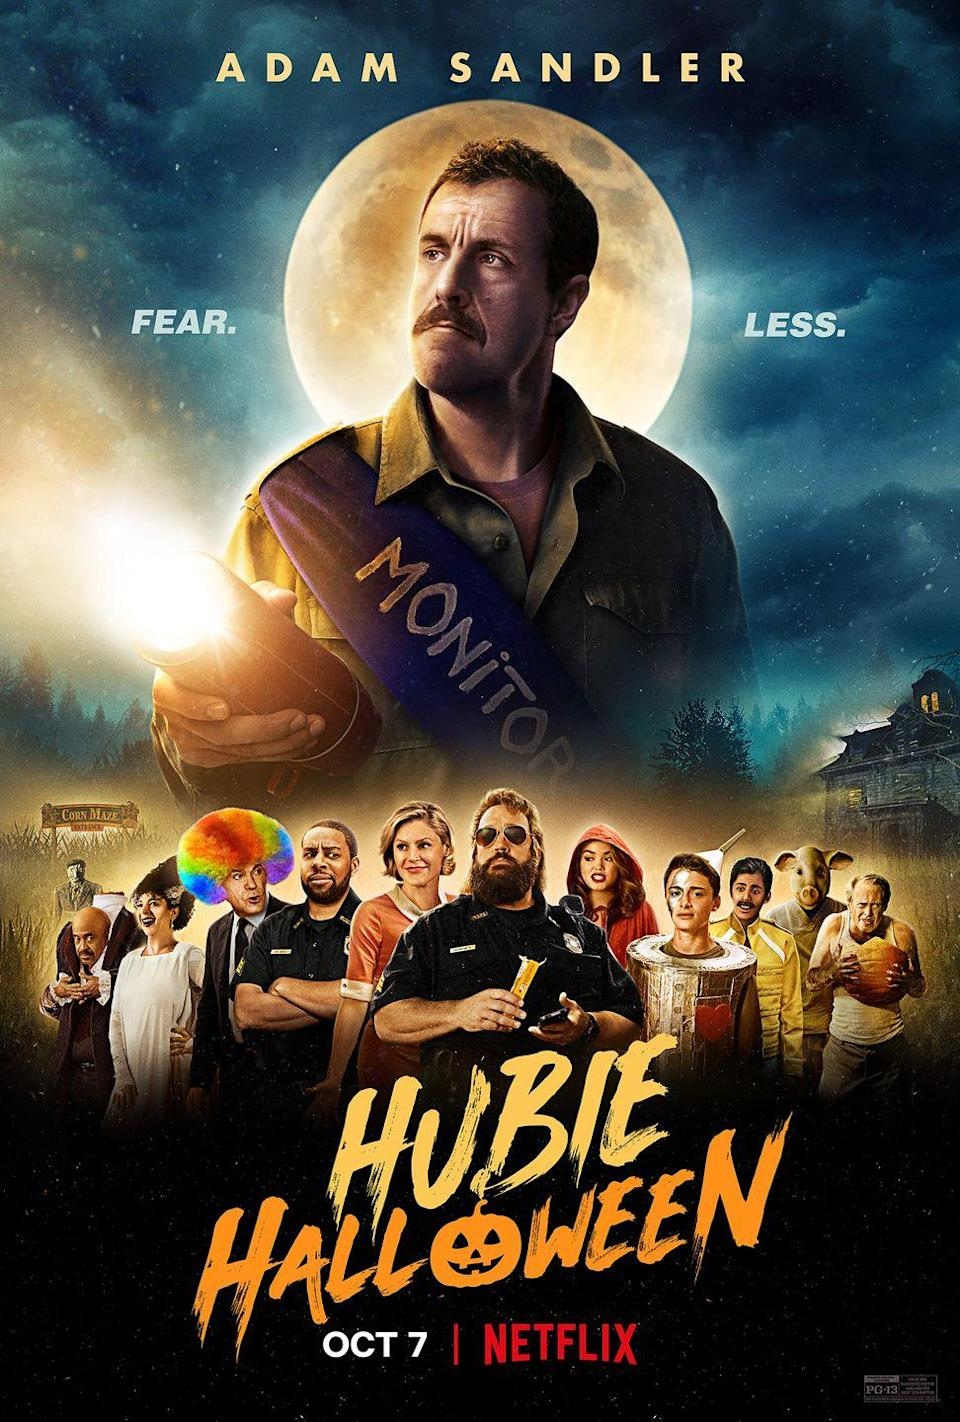 "<p>This Halloween horror-comedy finds Adam Sandler in classic Sandler mode, doing a strange accent in a small town full of locals. He plays a resident of Salem who, after a series of strange occurrences, has to convince the town that monsters are real. This debuts on Netflix on October 7, 2020.</p><p><a class=""link rapid-noclick-resp"" href=""https://www.netflix.com/title/80245104"" rel=""nofollow noopener"" target=""_blank"" data-ylk=""slk:WATCH NOW"">WATCH NOW</a></p>"